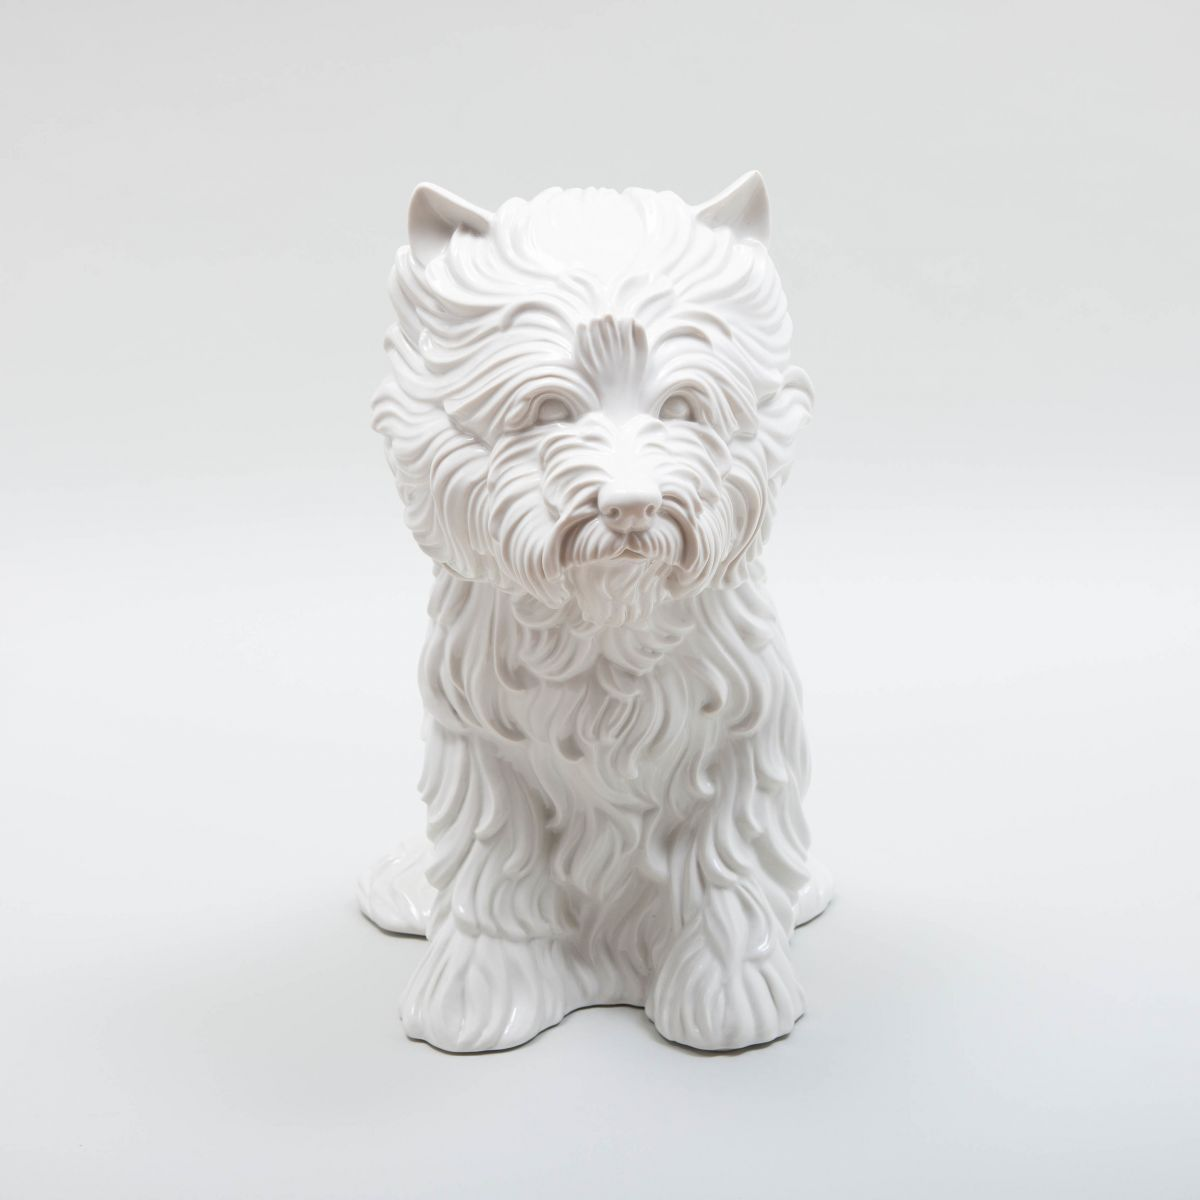 Jeff Koons, Puppy, Glazed porcelain, 1998